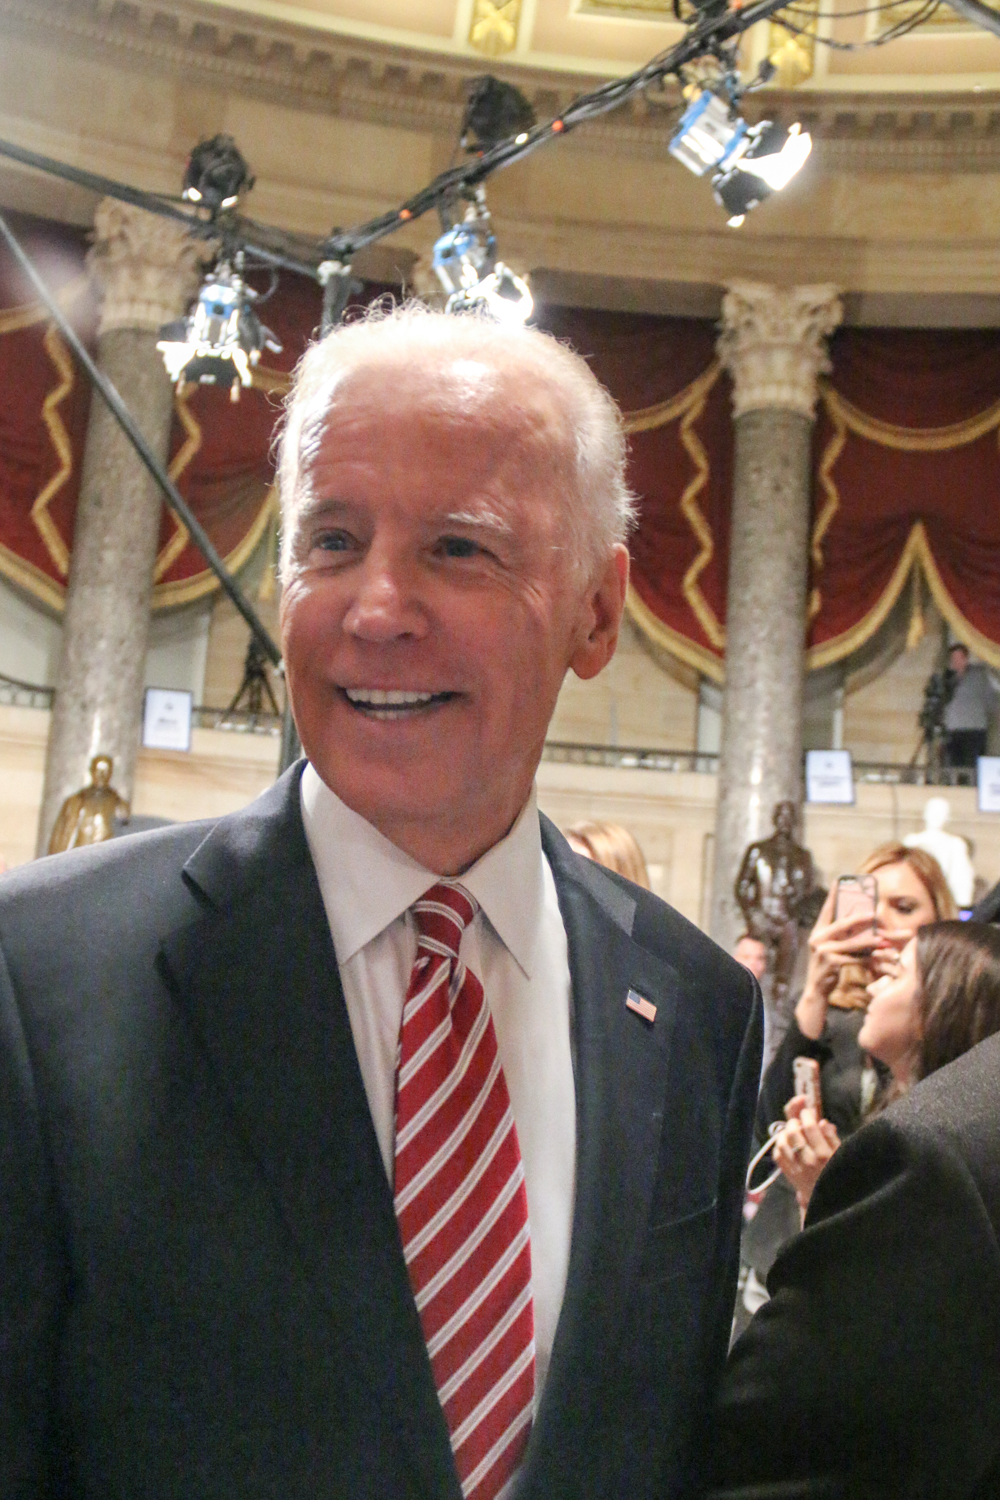 Vice President Joe Biden greets press members with smiles as he walks through Statuary Hall.